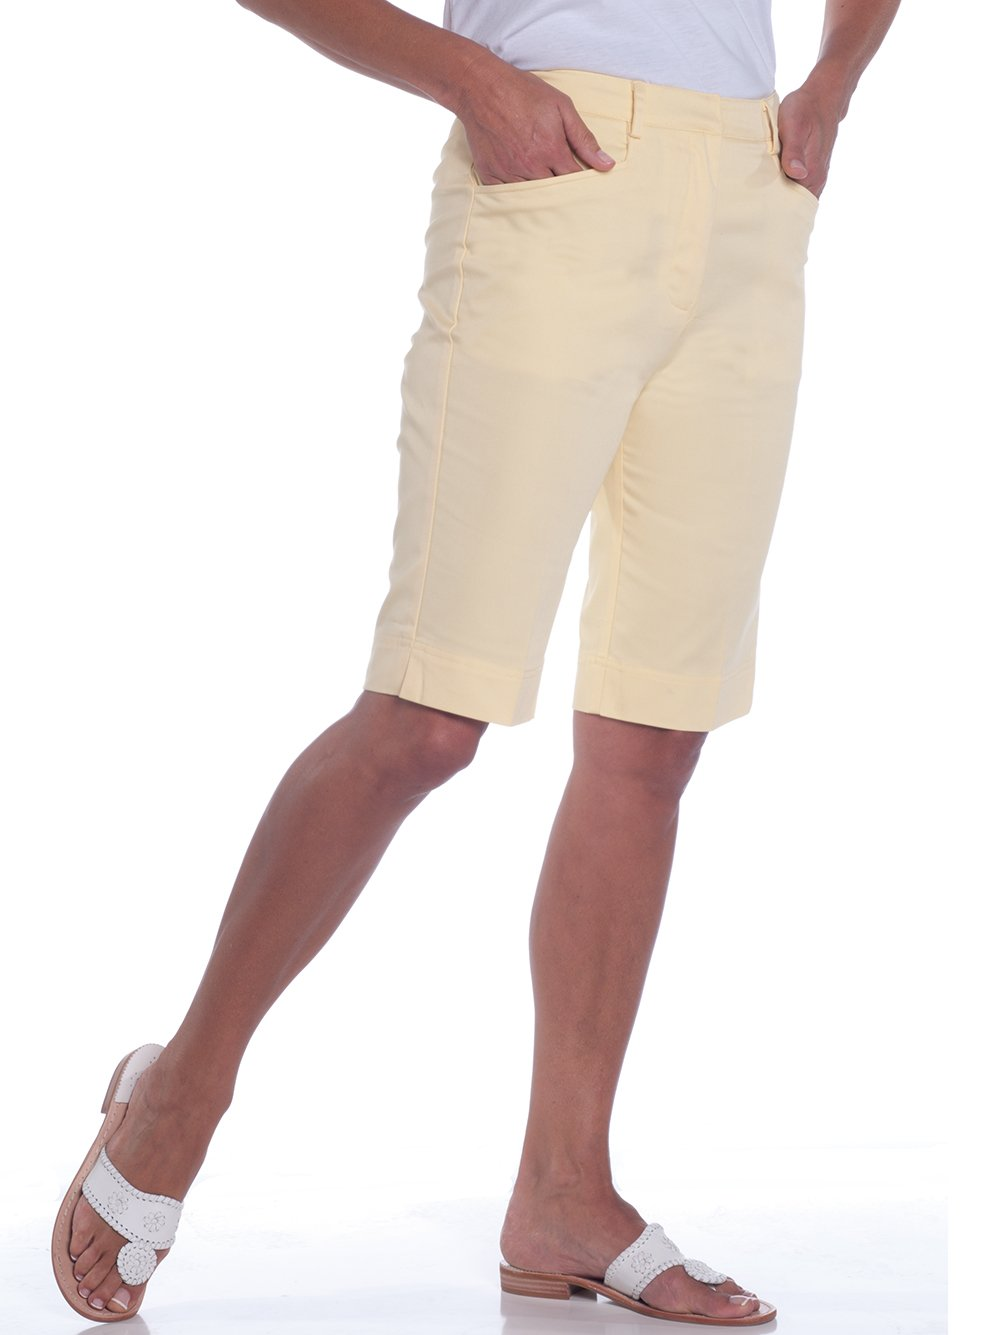 L-Pocket Bermuda Shorts | Lemonade 509 - Leonlevin